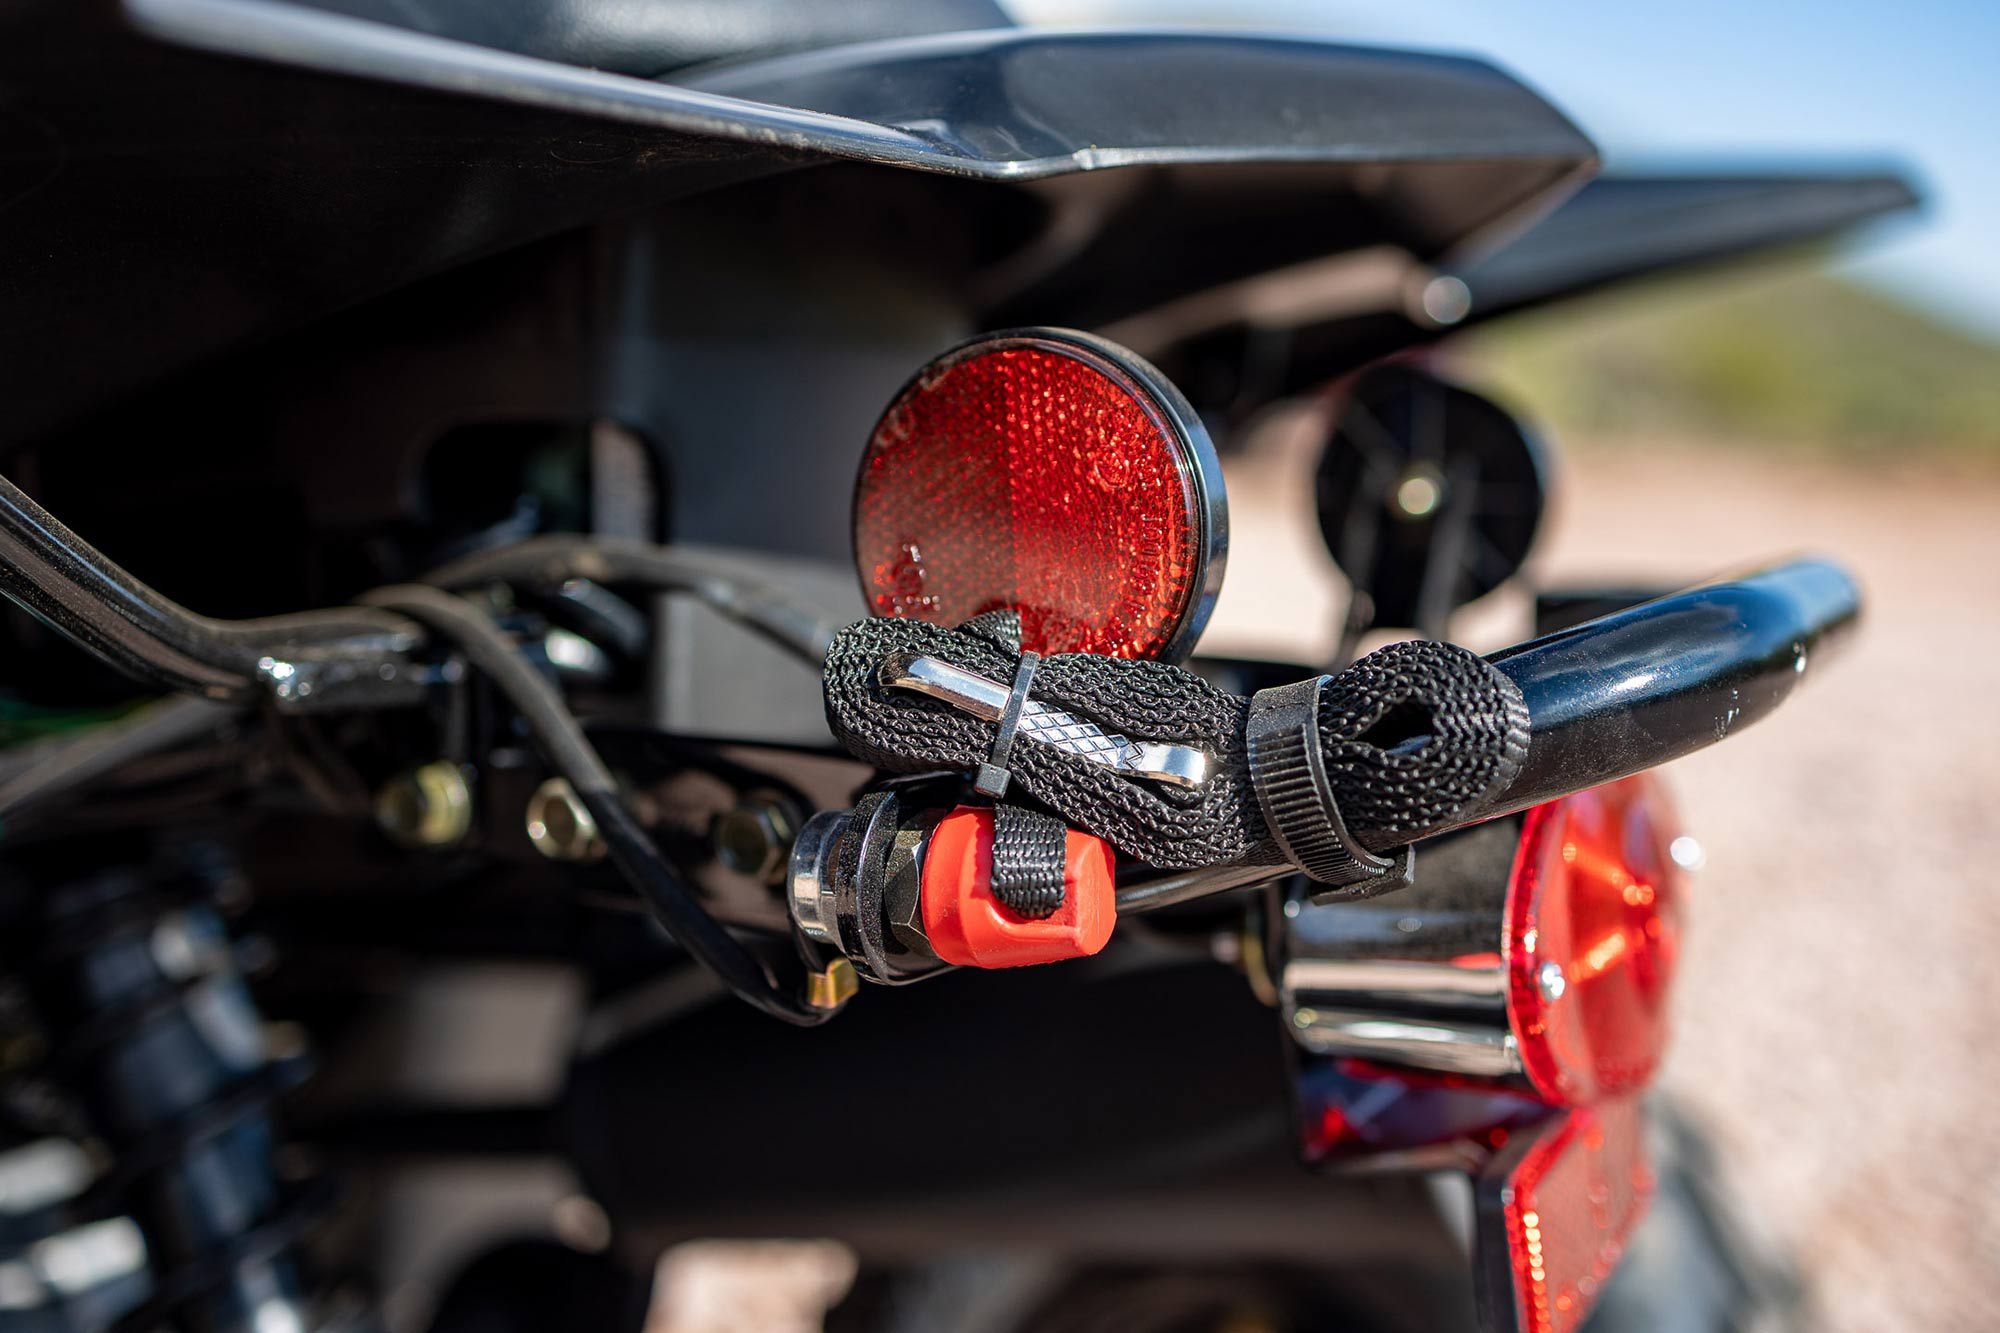 Parental control features include a throttle limiter and this engine kill switch with a 48-inch lanyard.